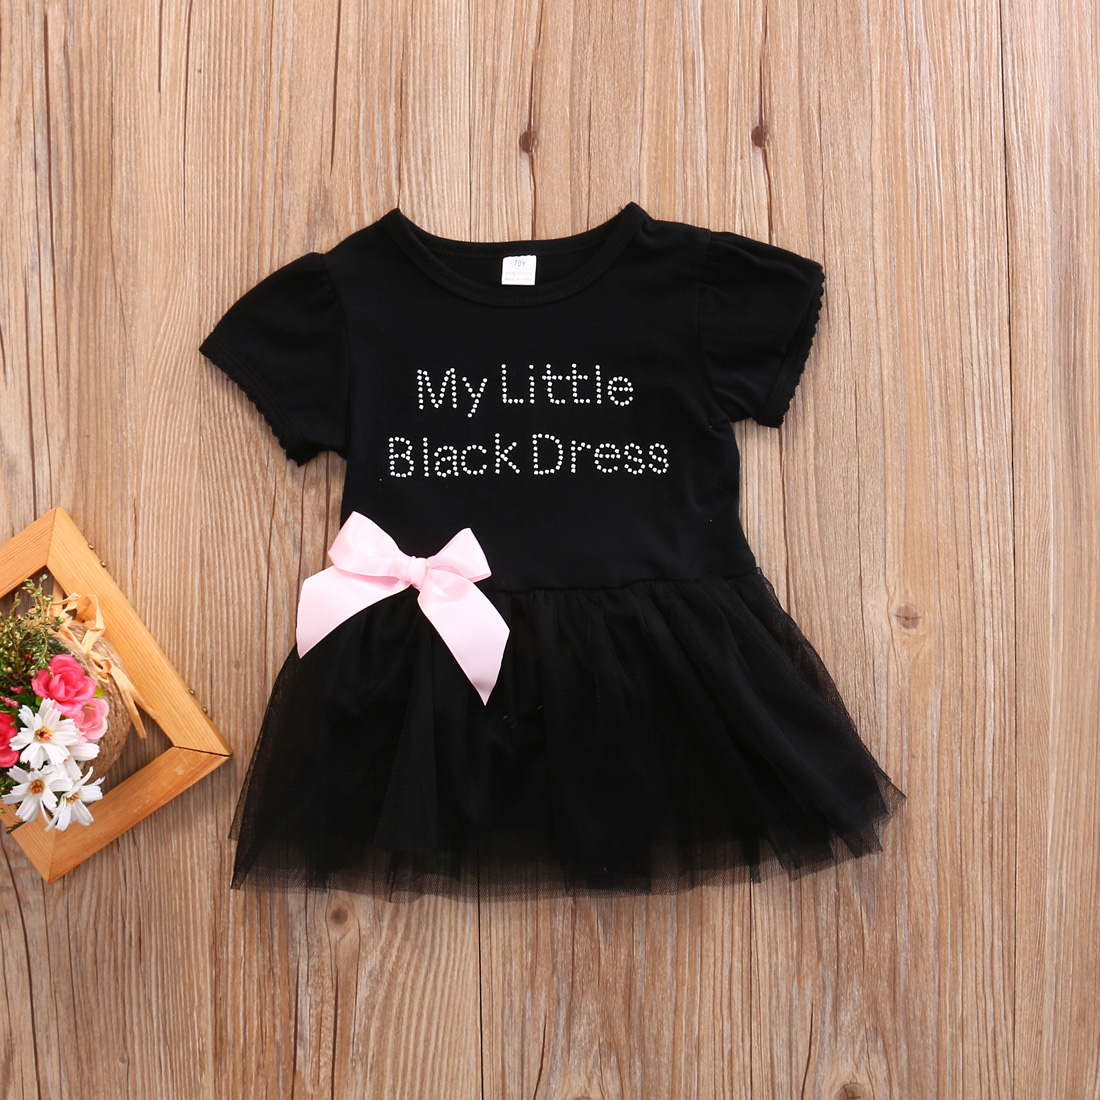 c27cf78d1652 Gaono - Infant Baby Girls My Little Black Dress Bodysuit Tutu Romper  Jumpsuit Outfits - Walmart.com